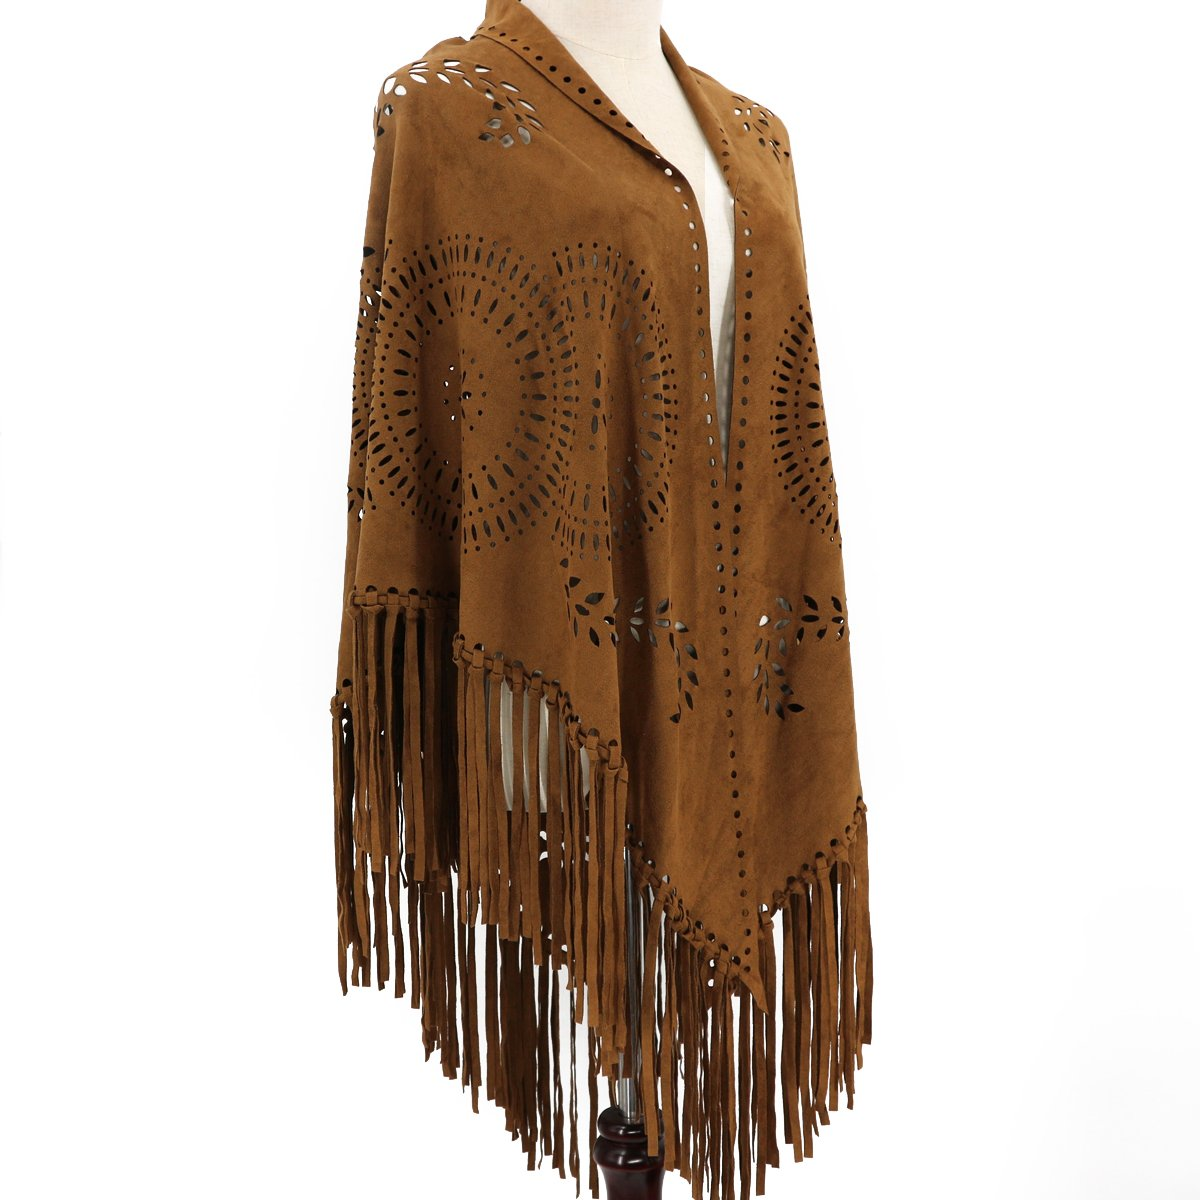 ZOFZ Fashion Suede Laser Cut Fringed Cape Shawl Wrap Scarf 4 Colors Brown